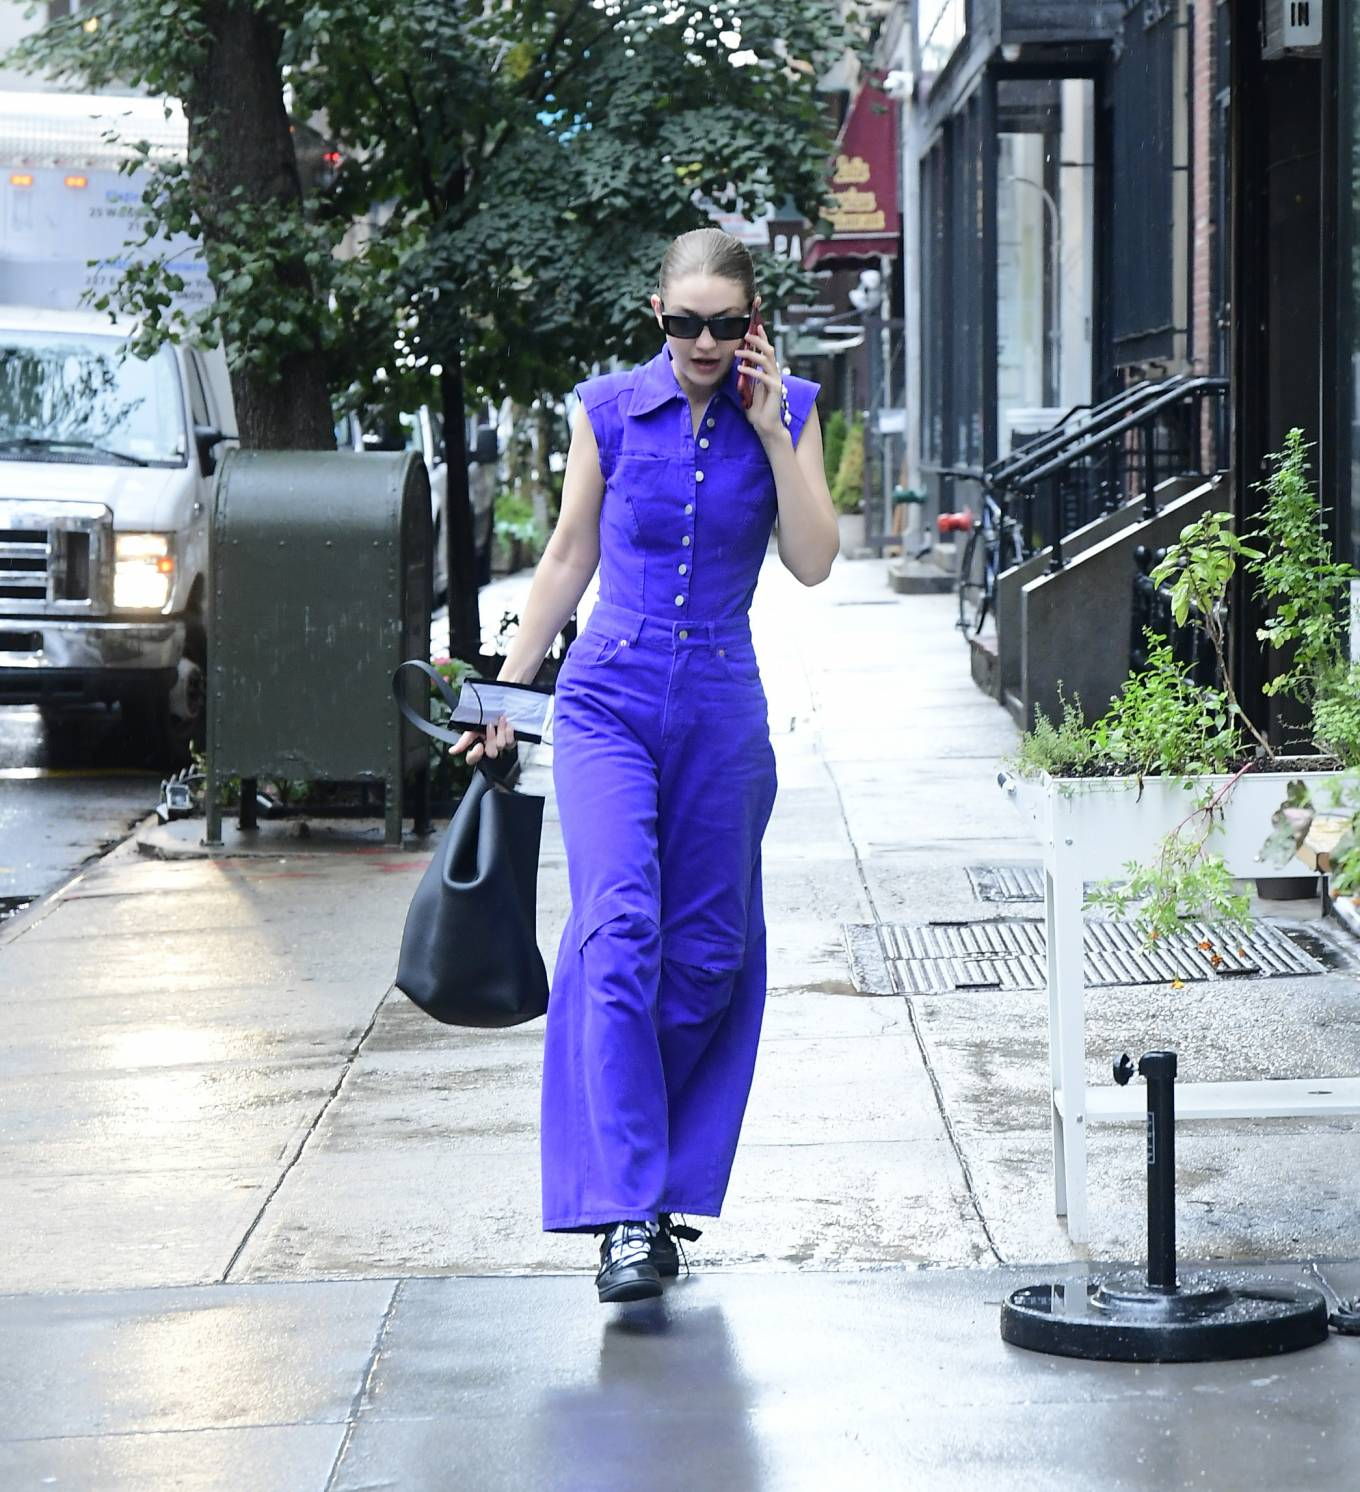 Gigi Hadid donning oversized blue cotton low rise jeans with overlapping section at knees